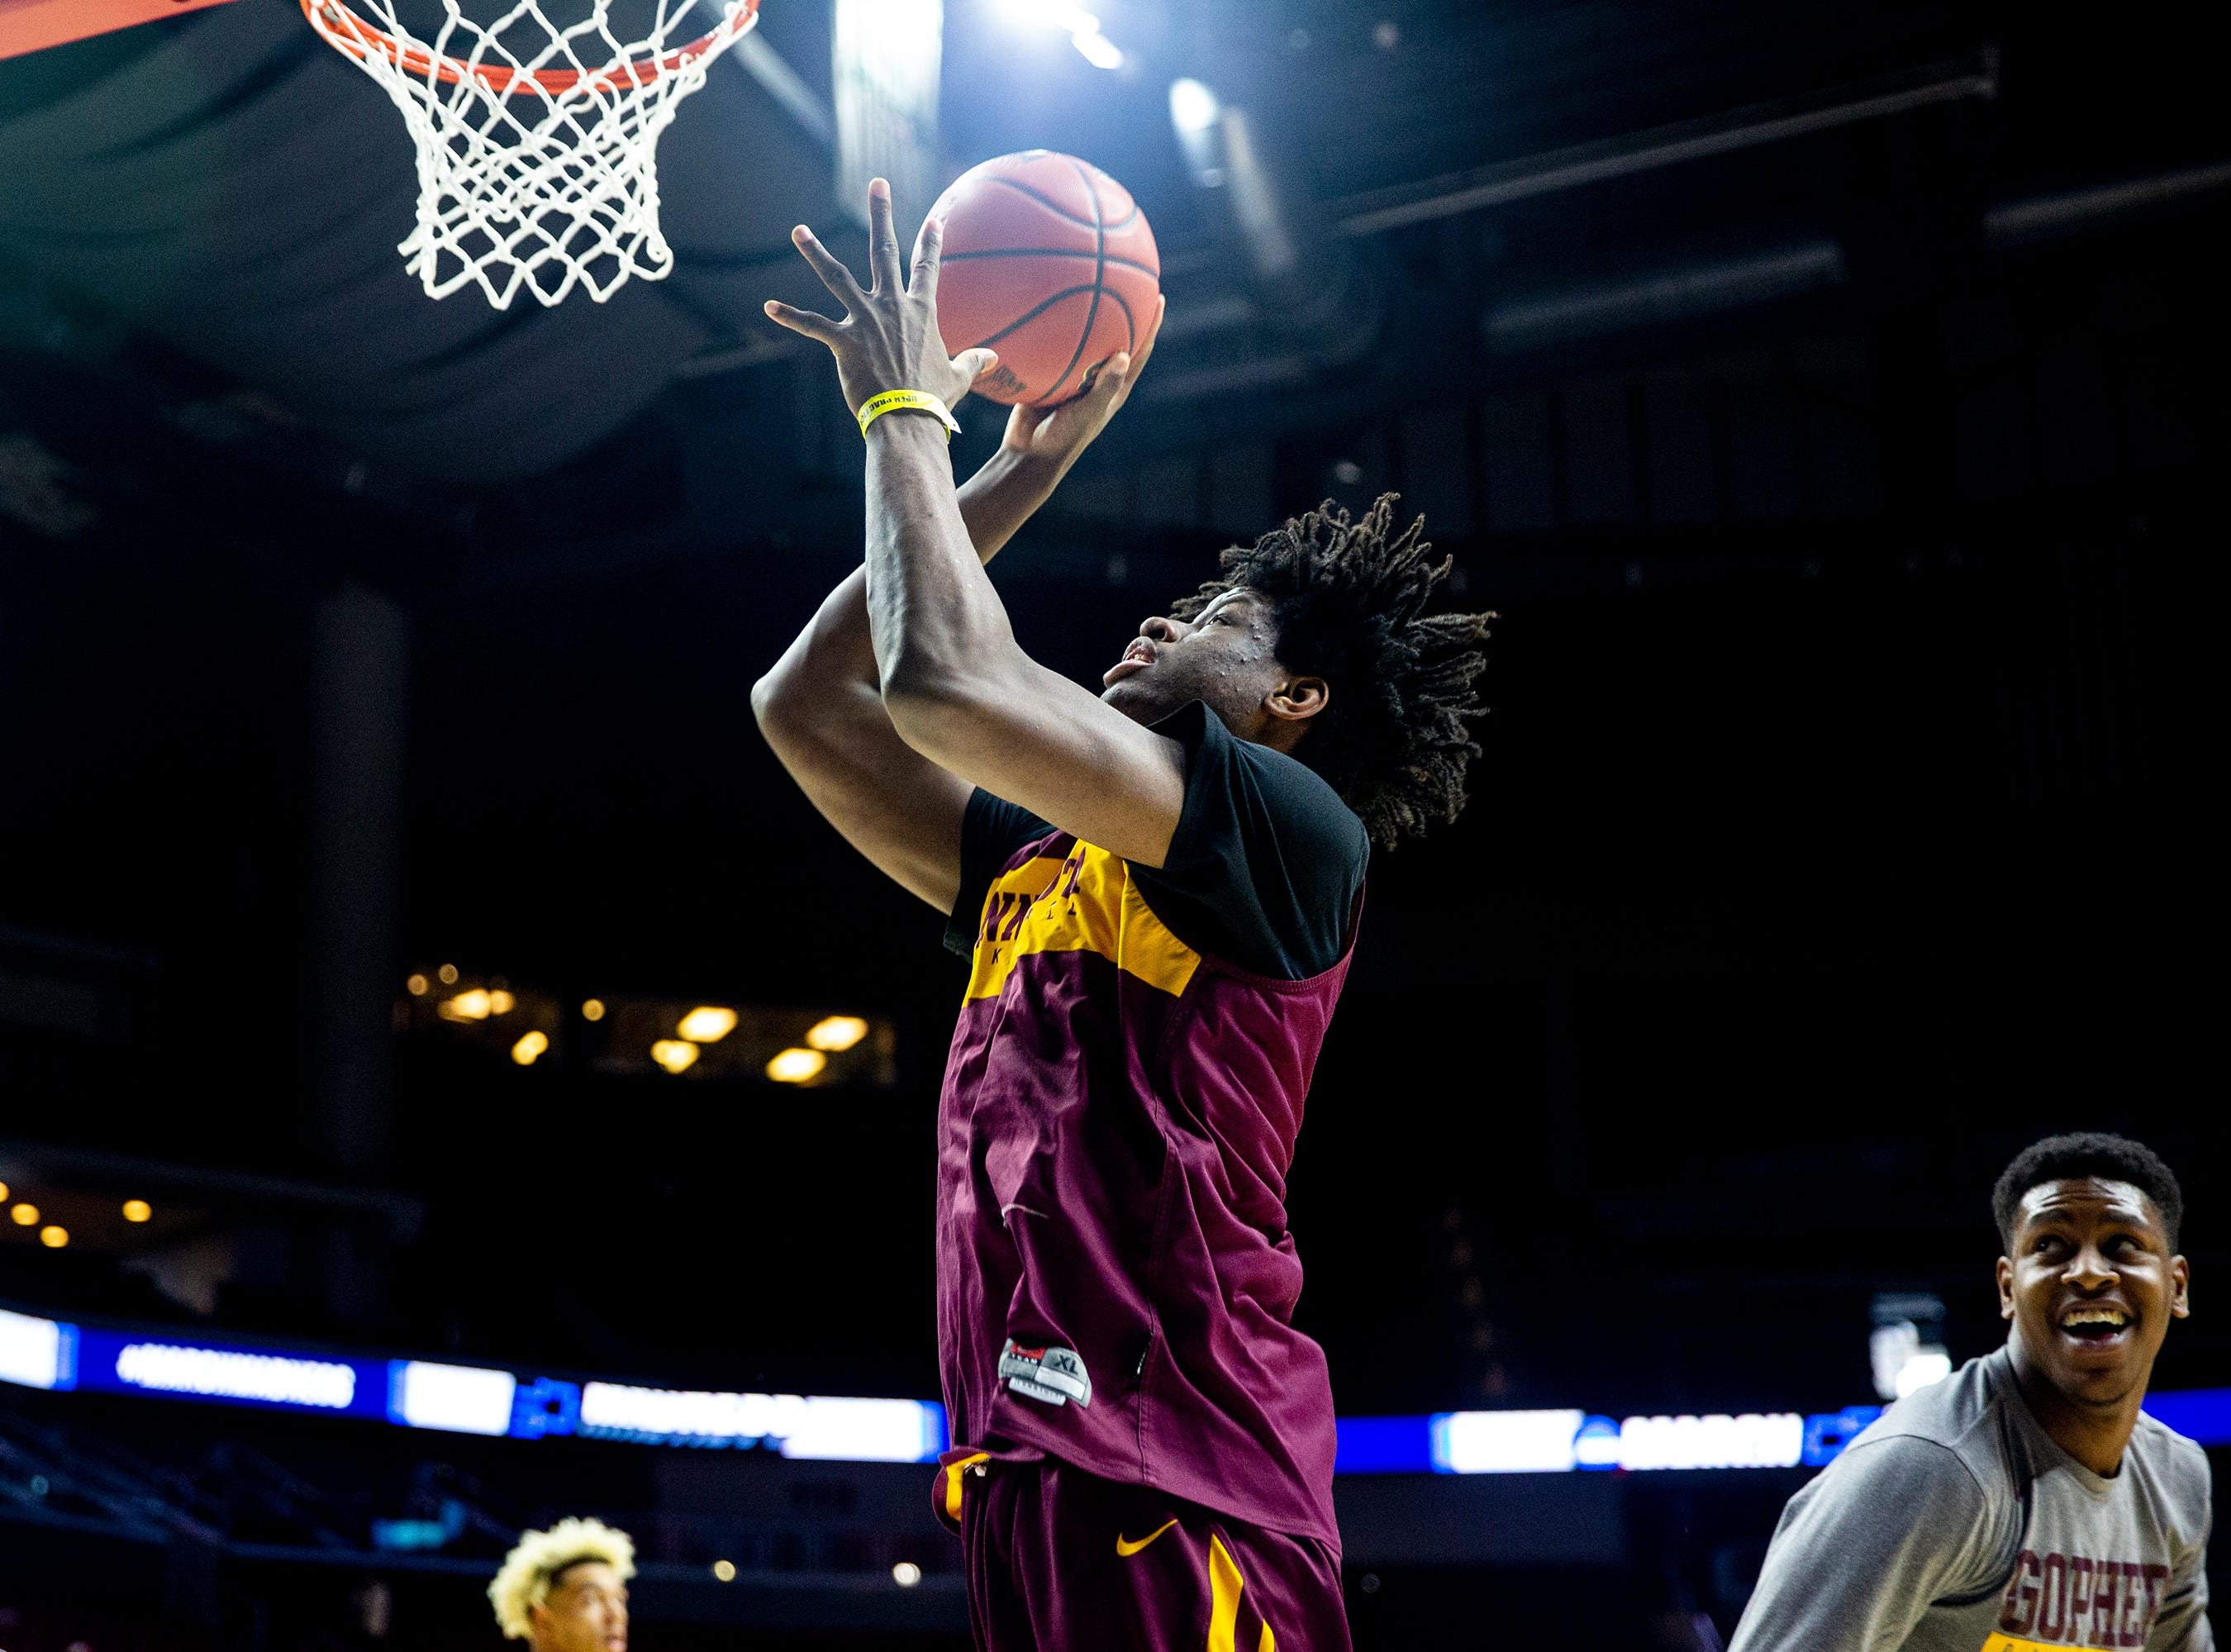 Minnesota's Daniel Oturu shoots a lay-up during Minnesota's open practice before the first round of the NCAA Men's Basketball Tournament on Wednesday, March 20, 2019, at Wells Fargo Arena in Des Moines, Iowa. Minnesota will face Louisville in the first round on Thursday.